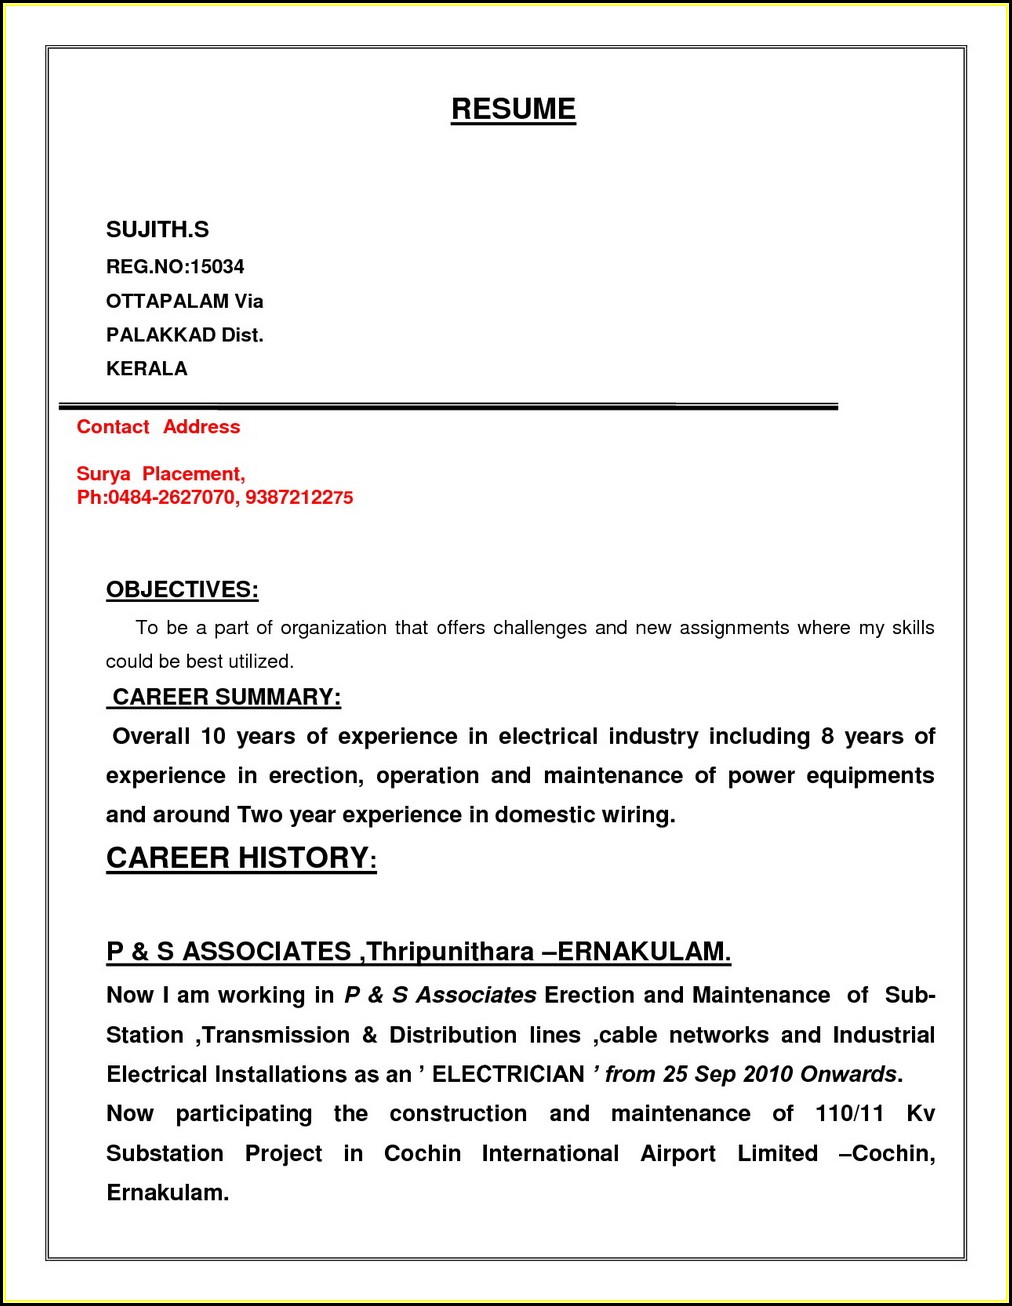 Electrician Resume Format Free Download